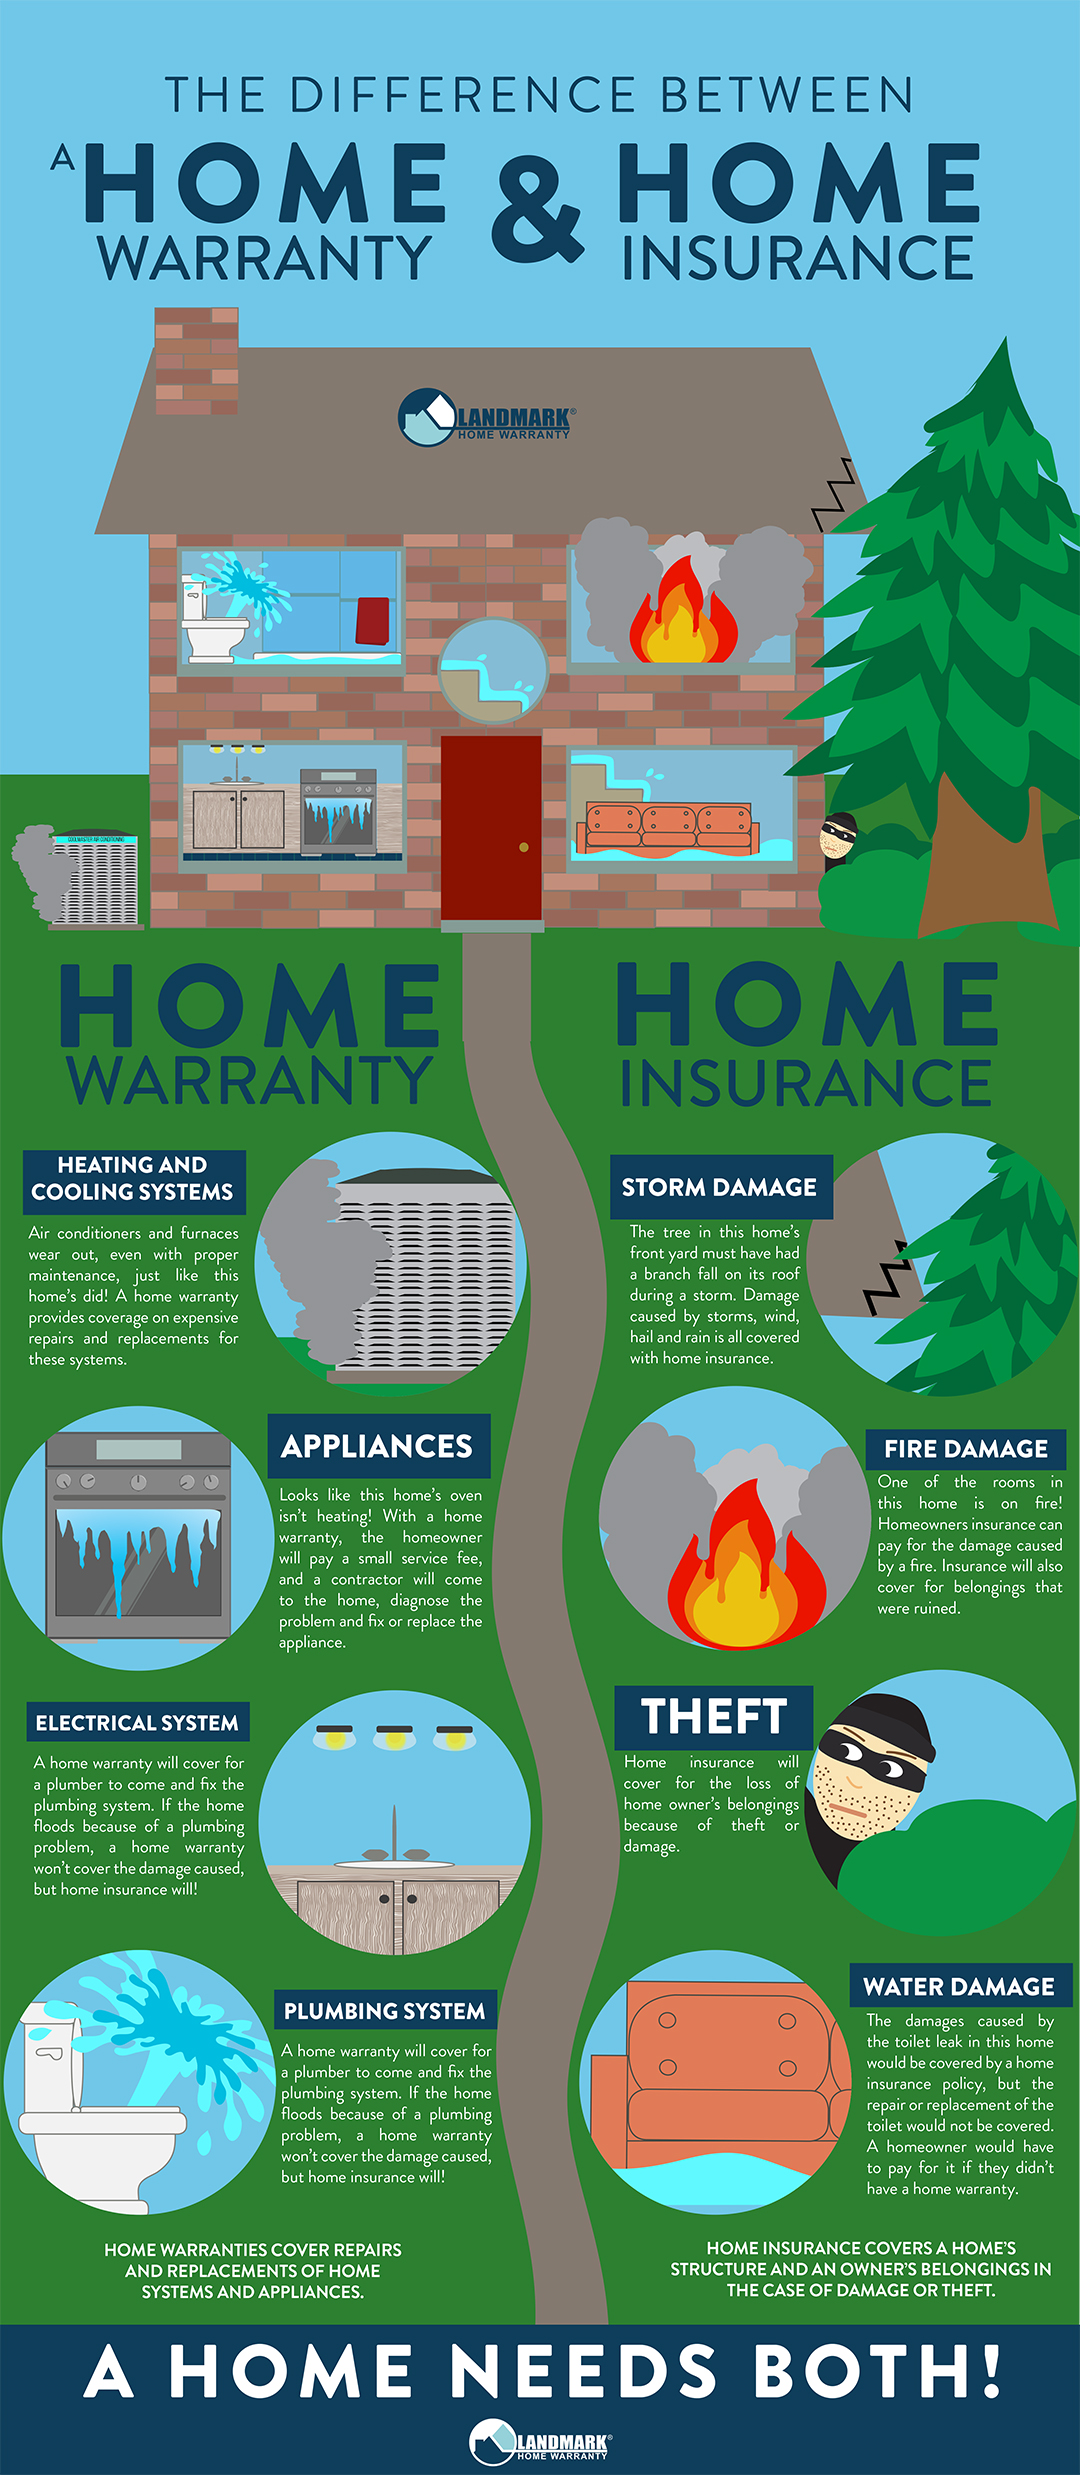 Home Warranty Vs Home Insurance What S The Difference Tindell Co Tindell Co